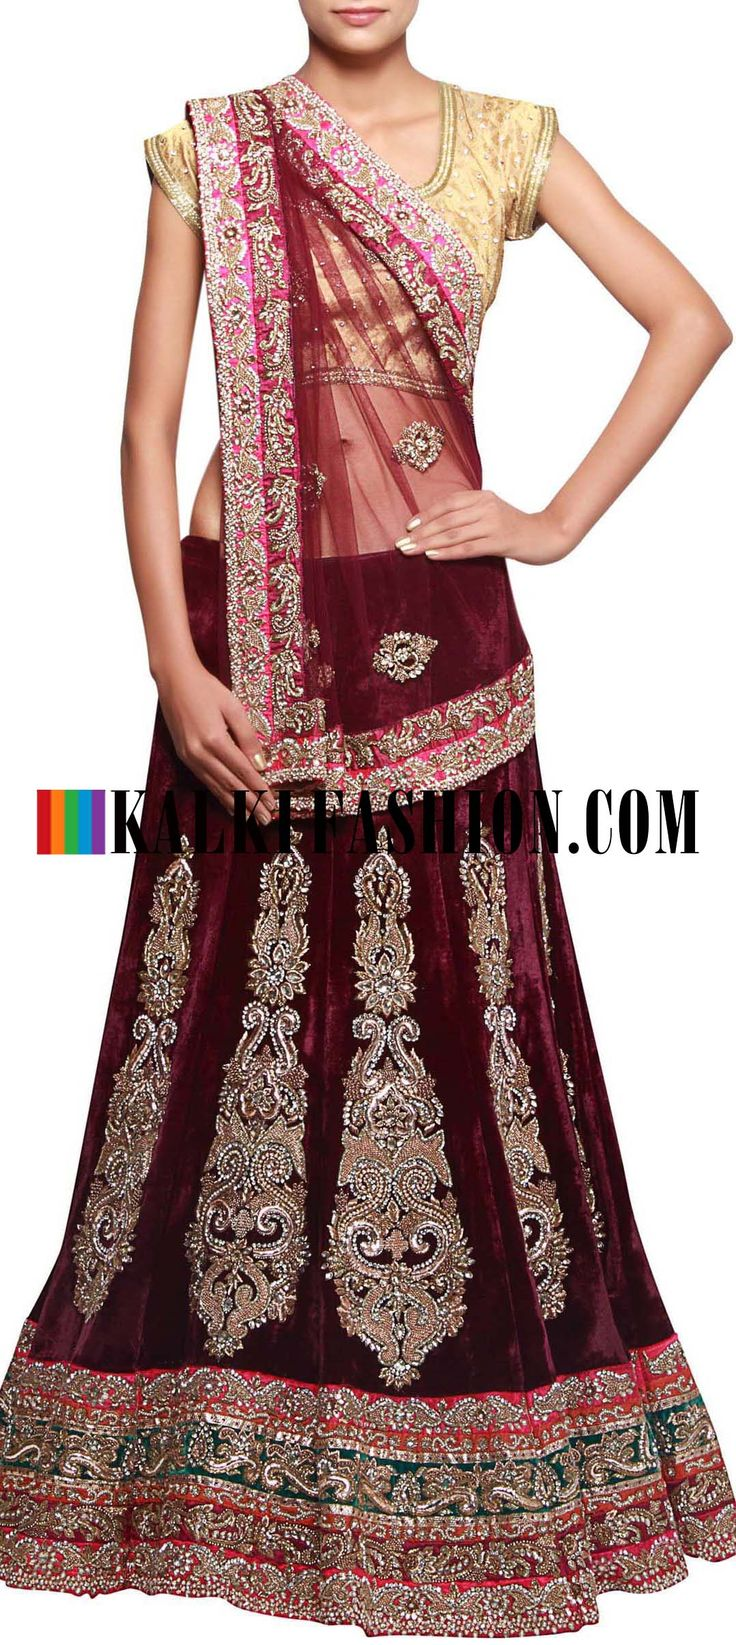 Get this beautiful lehenga here: http://www.kalkifashion.com/burgundy-unstitched-velvet-lehenga-featuring-in-kundan-and-stone-embroidery-only-on-kalki.html Free shipping worldwide.